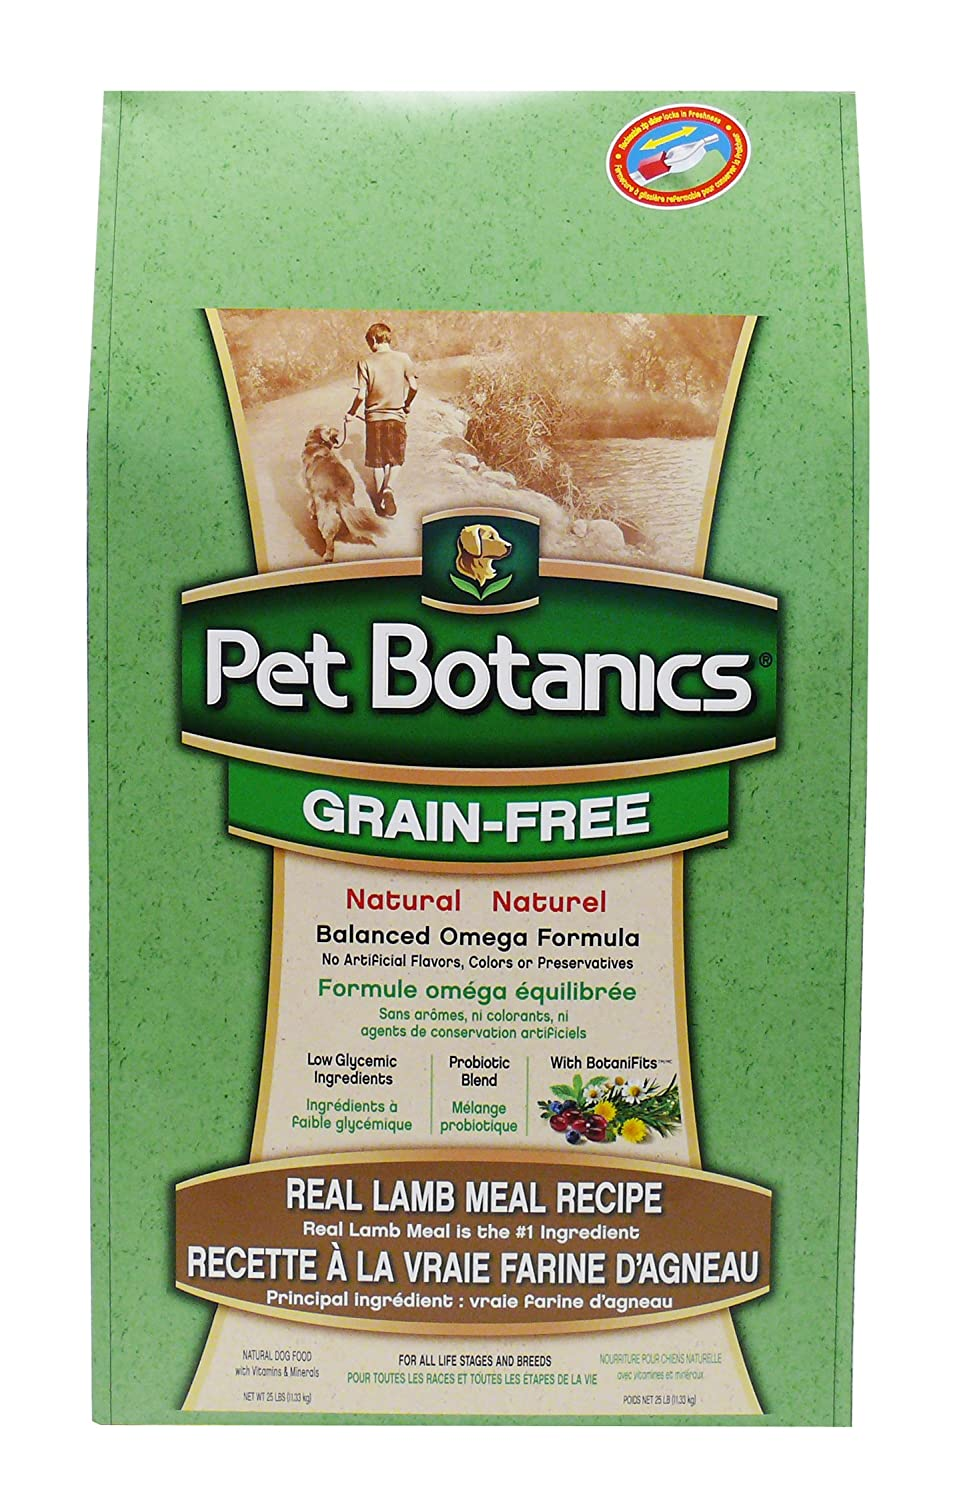 Pet Botanics Grain-Free Dog Food